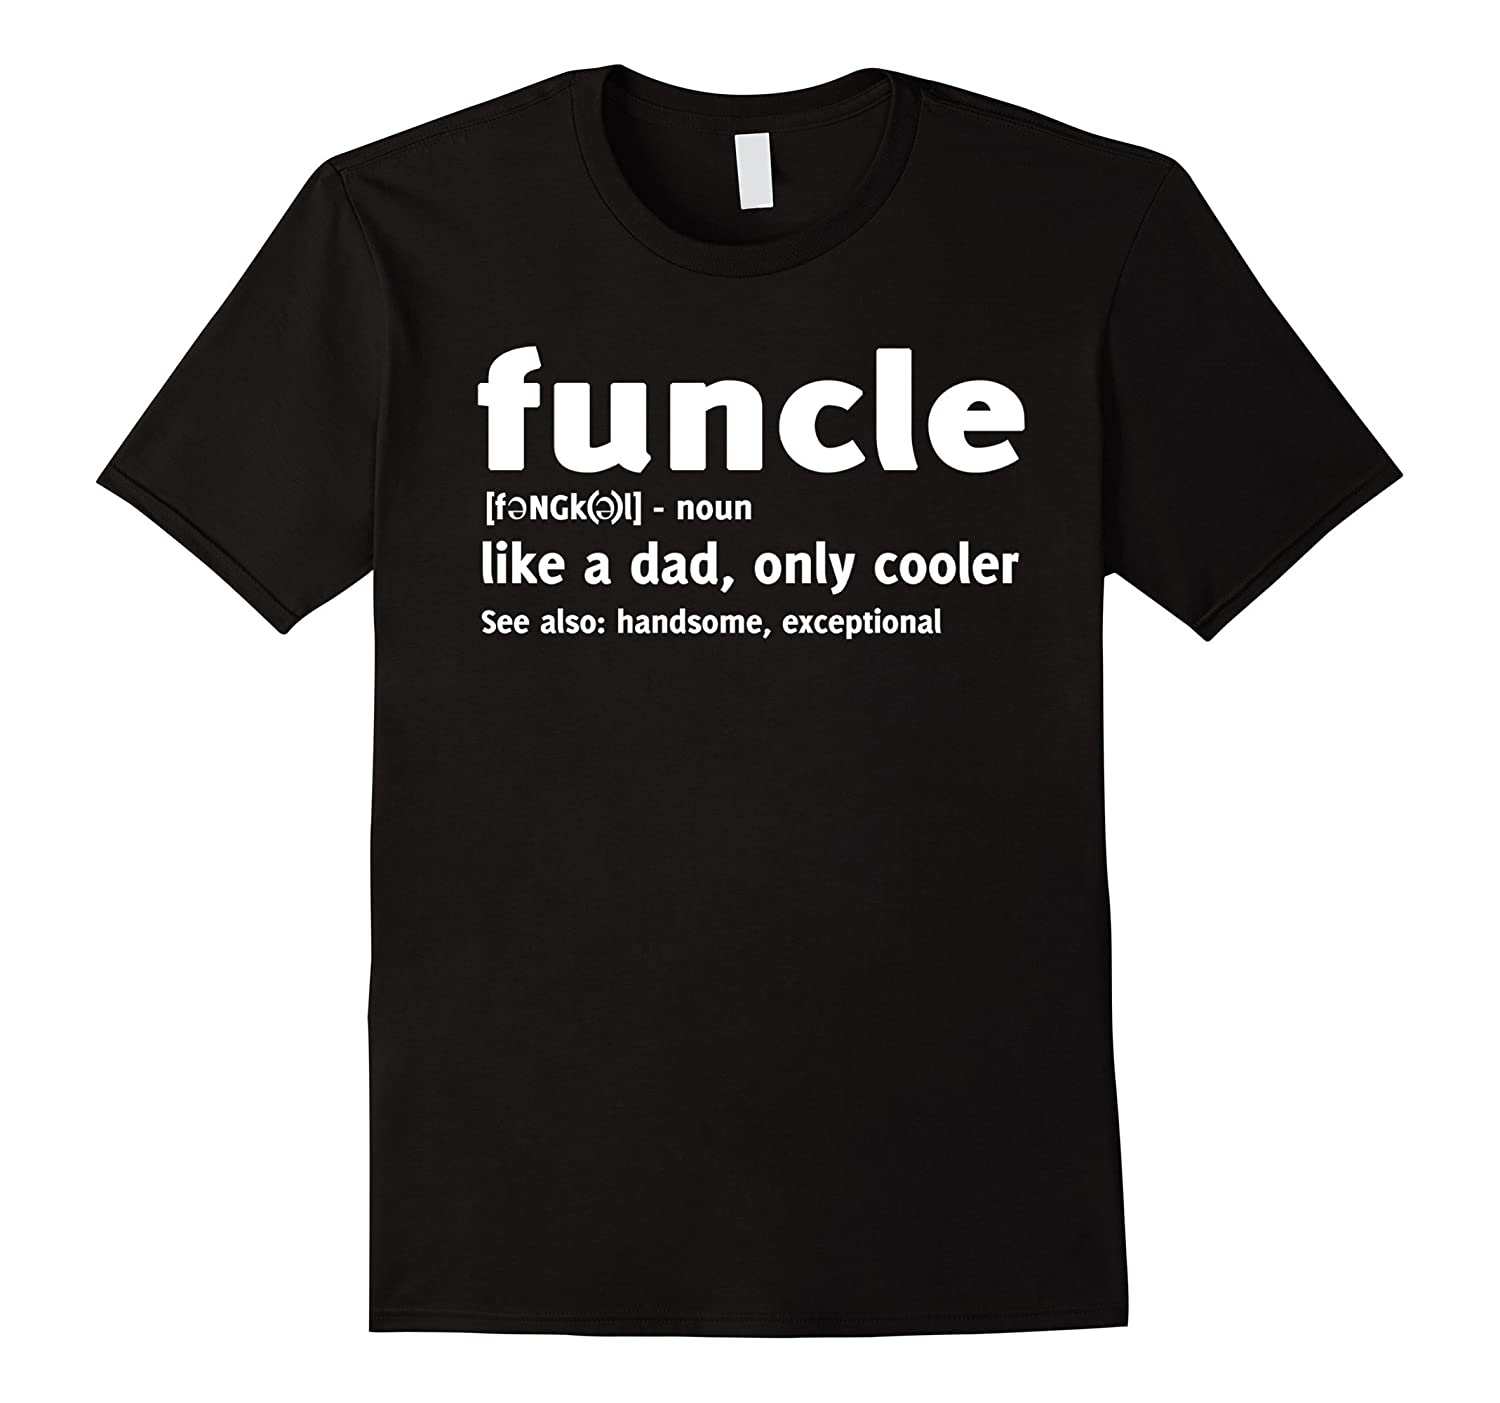 9e27ad34 Funcle like a dad, only cooler T-shirt-ANZ ⋆ Anztshirt